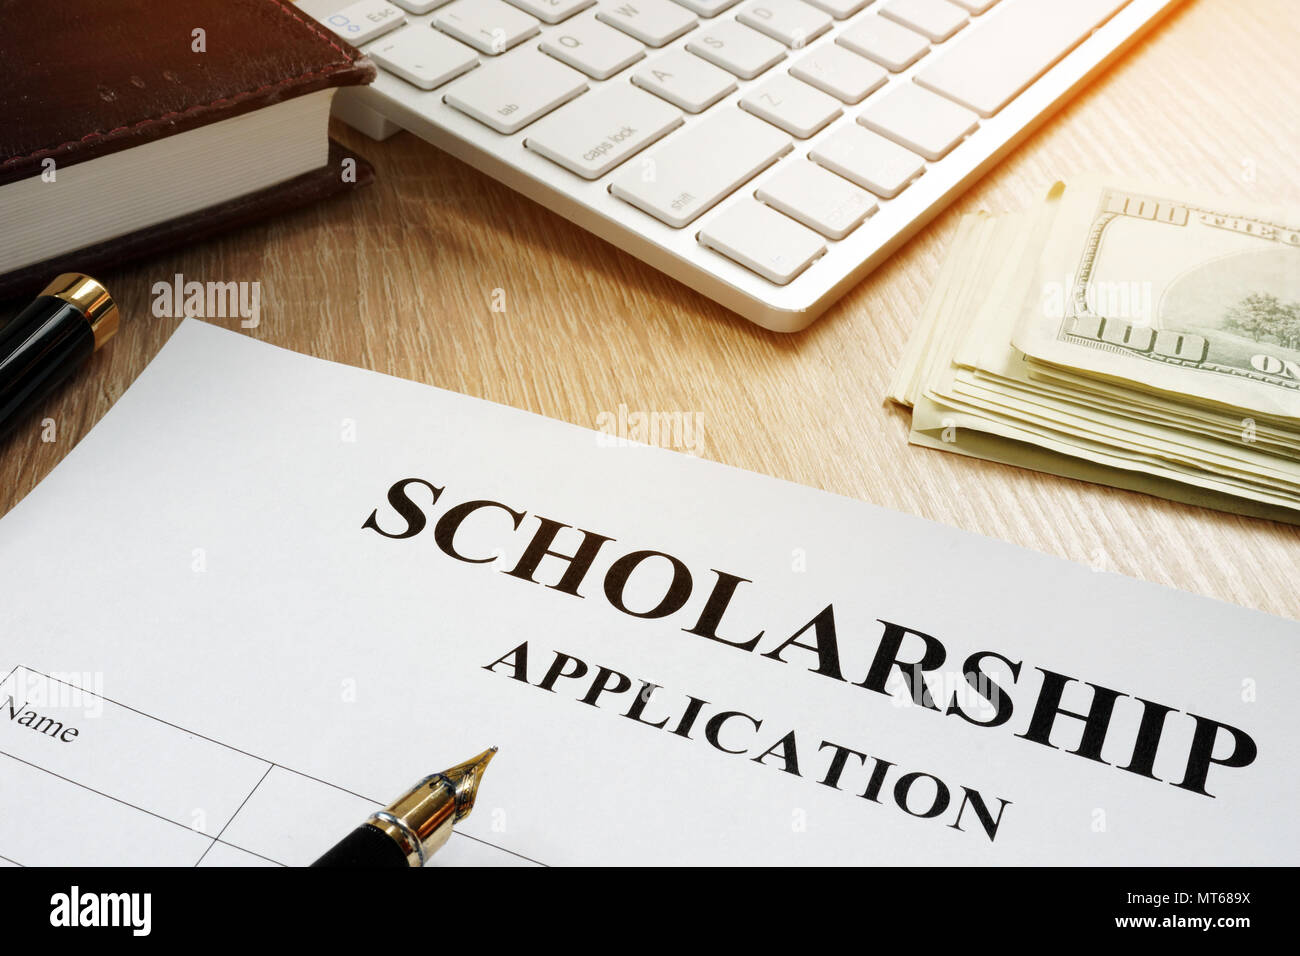 Scholarship application for student. Money for education. - Stock Image